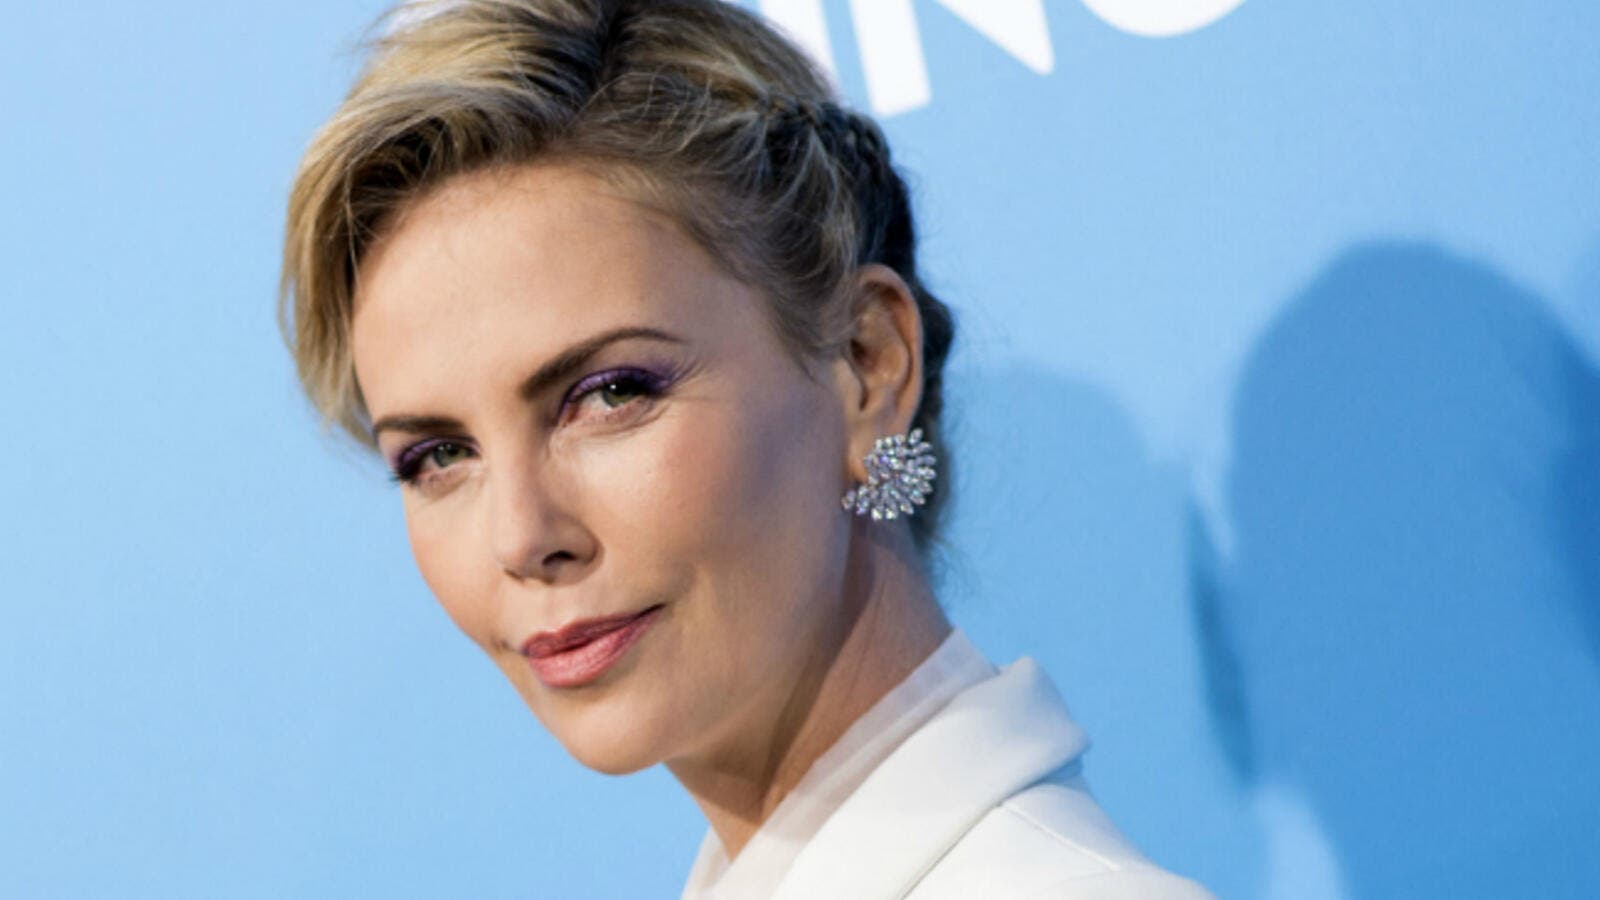 The famous faces you will get to see in Dubai's Annual Global Teacher Prize on Sunday, March 18, will include, the South African Actress Charlize Theron (Source: VALERIE MACON / AFP)